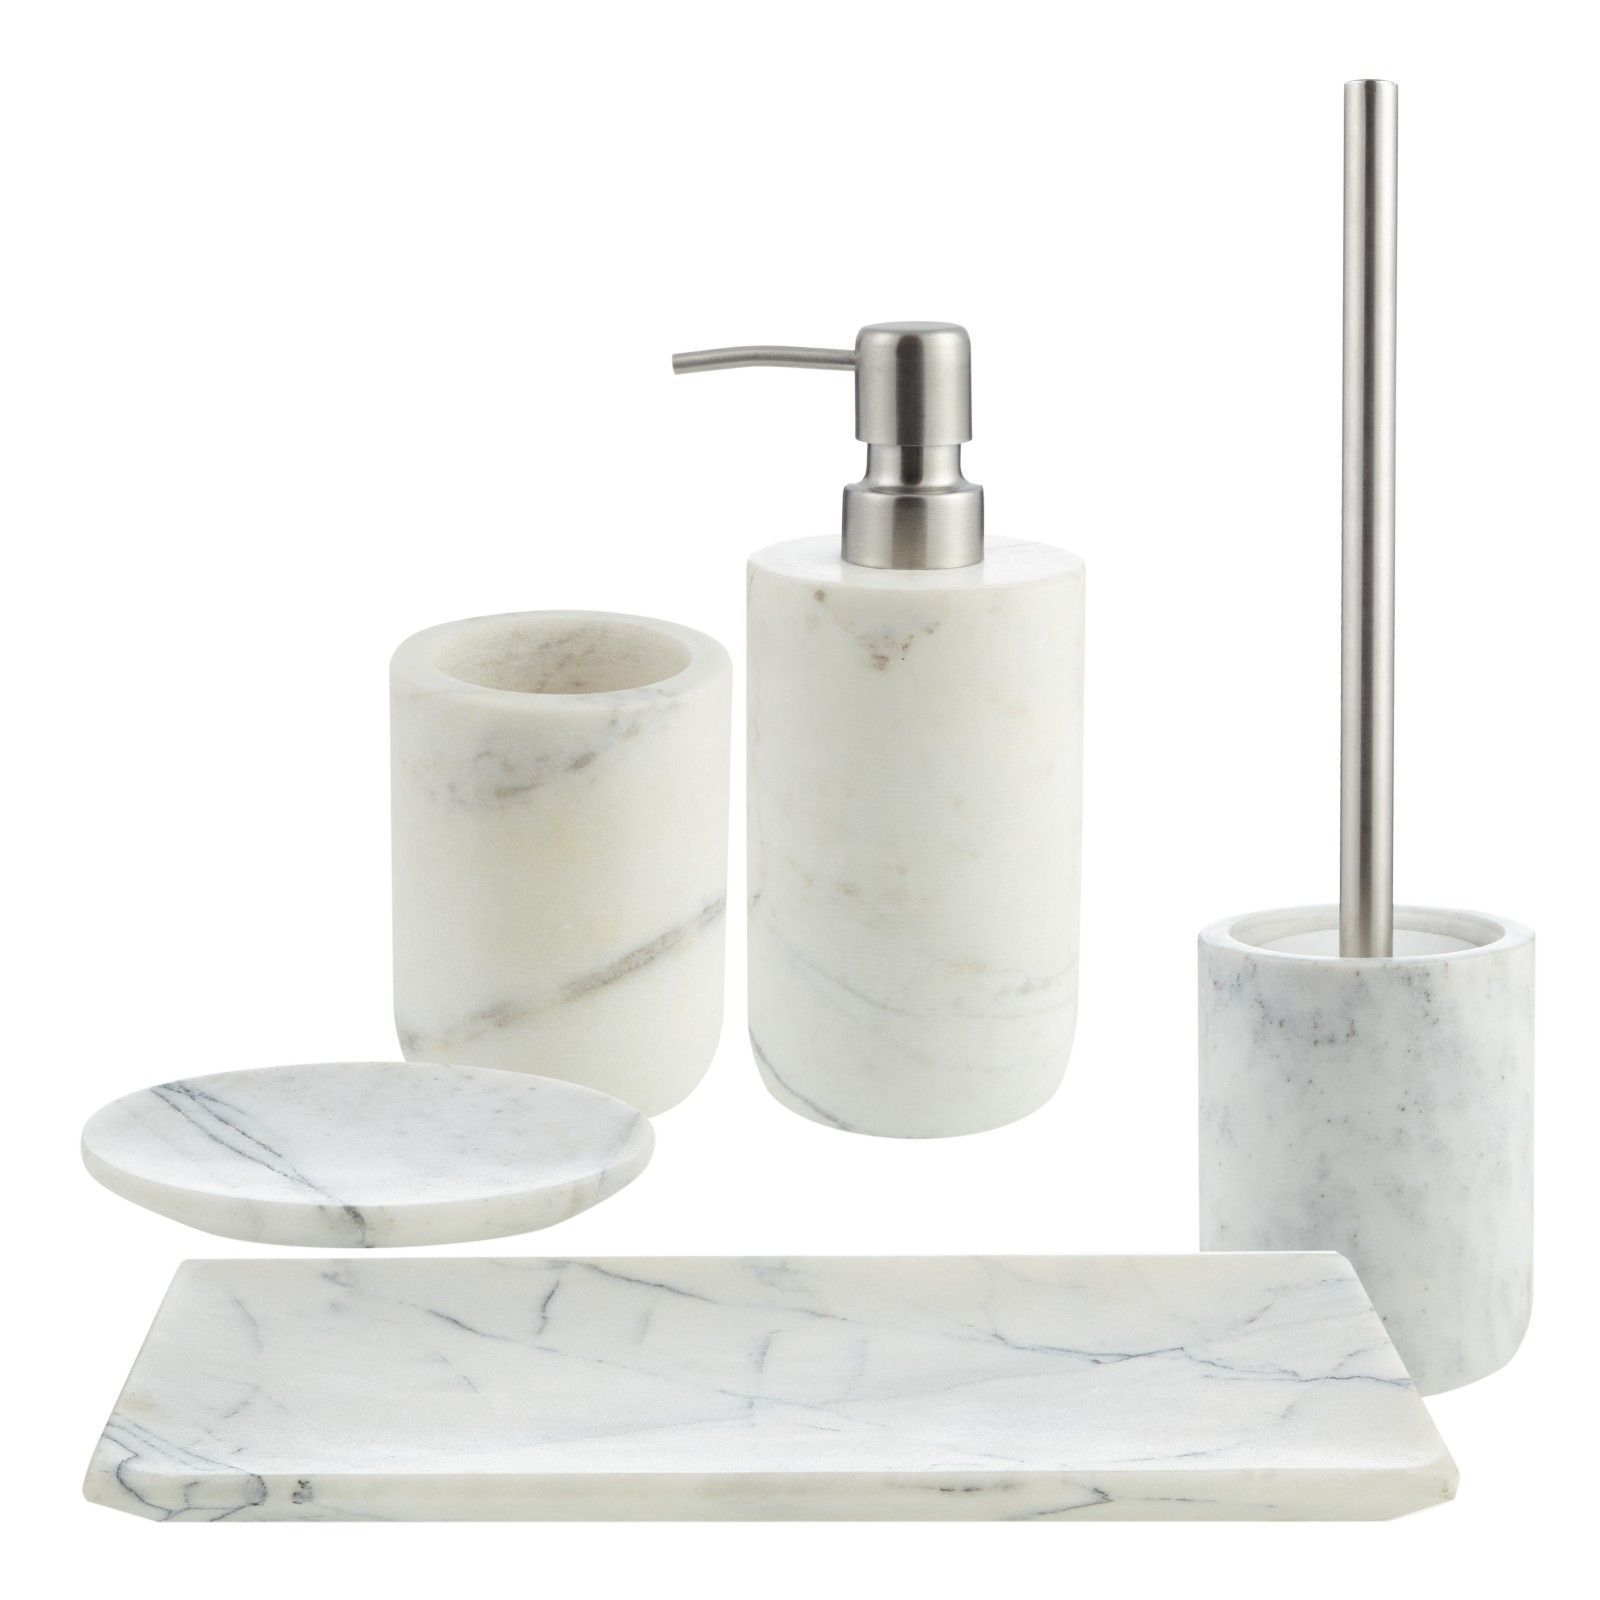 Buy John Lewis White Marble Bathroom Accessories Online At Johnlewis Com Bathroomdesignj Marble Bathroom Accessories White Marble Bathrooms Marble Accessories